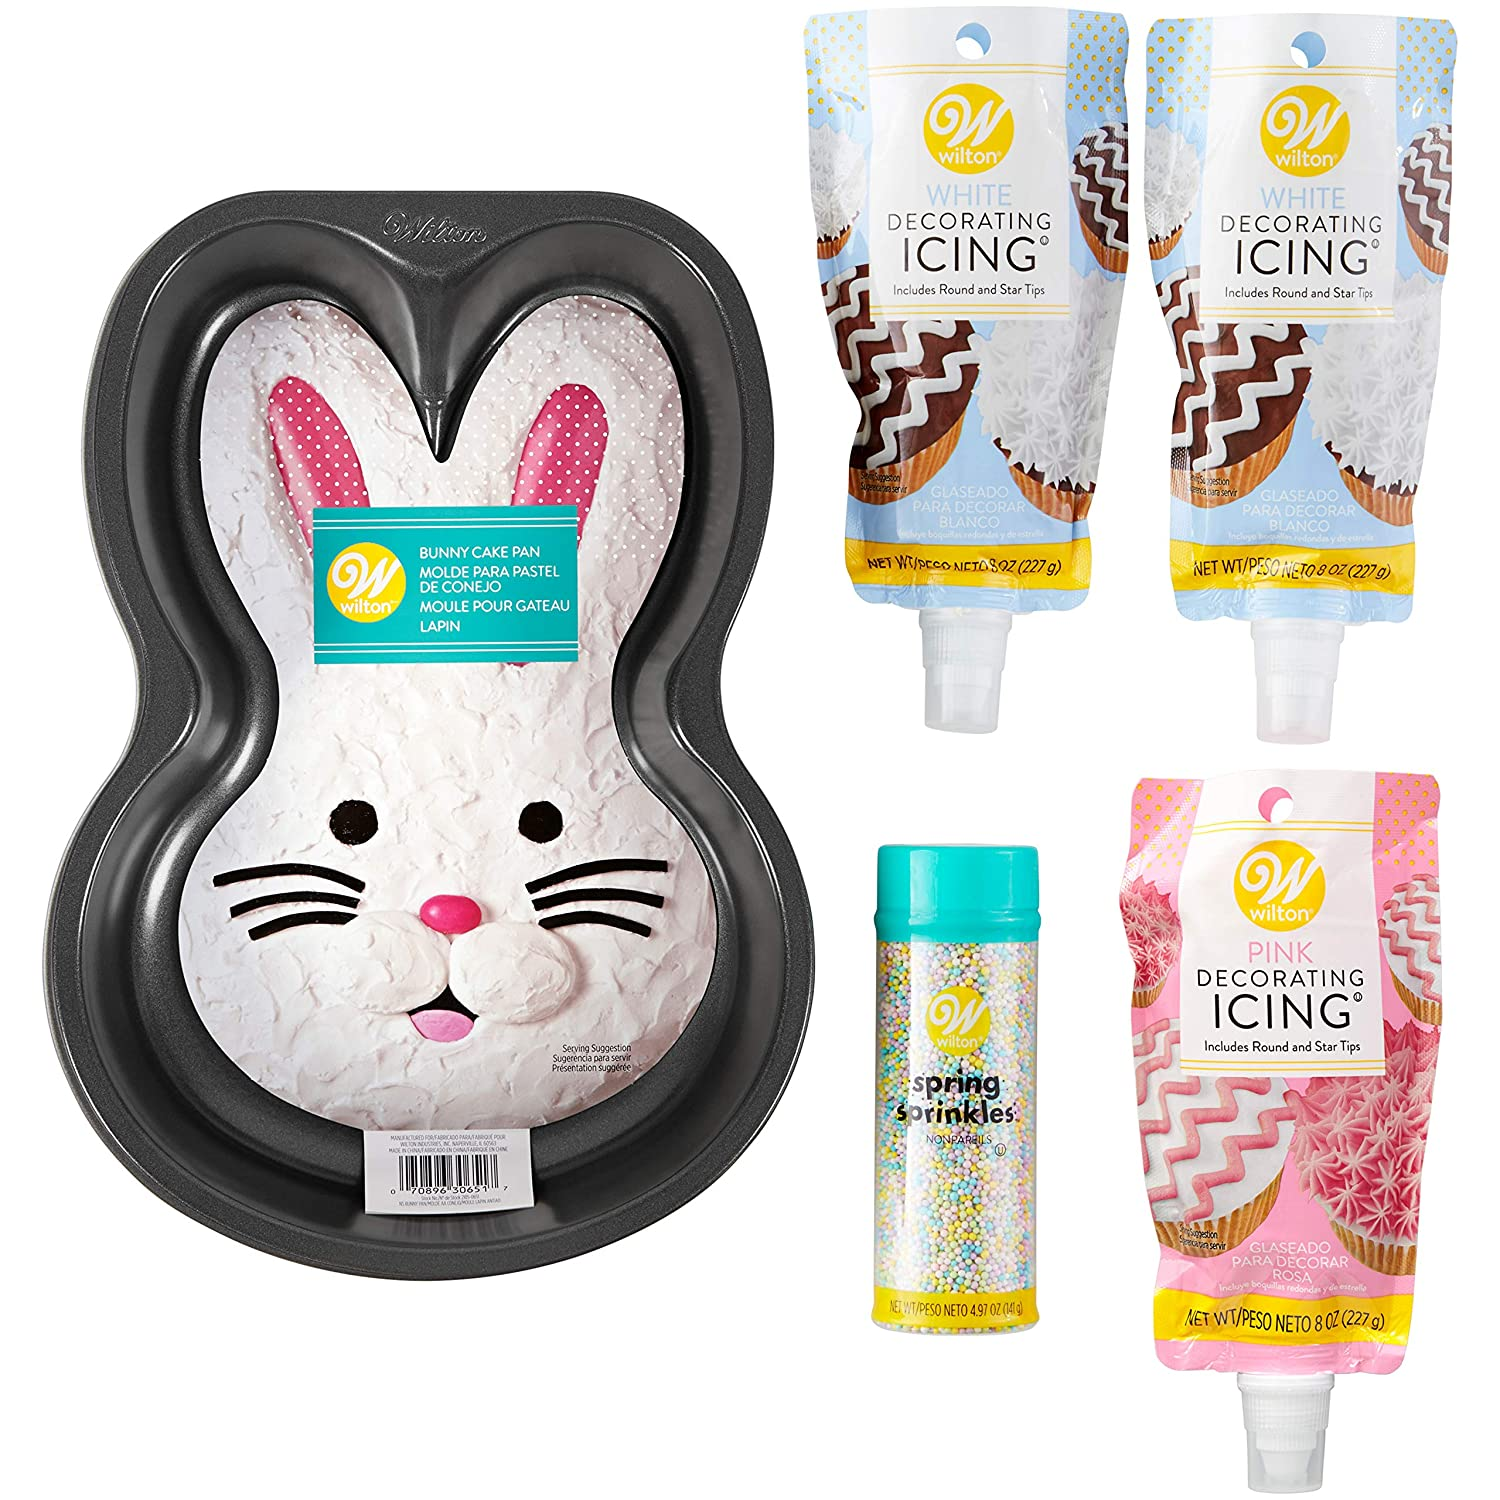 Amazon.com: Wilton Easter Bunny Cake Baking and Decorating Set, 5-Piece: Kitchen & Dining